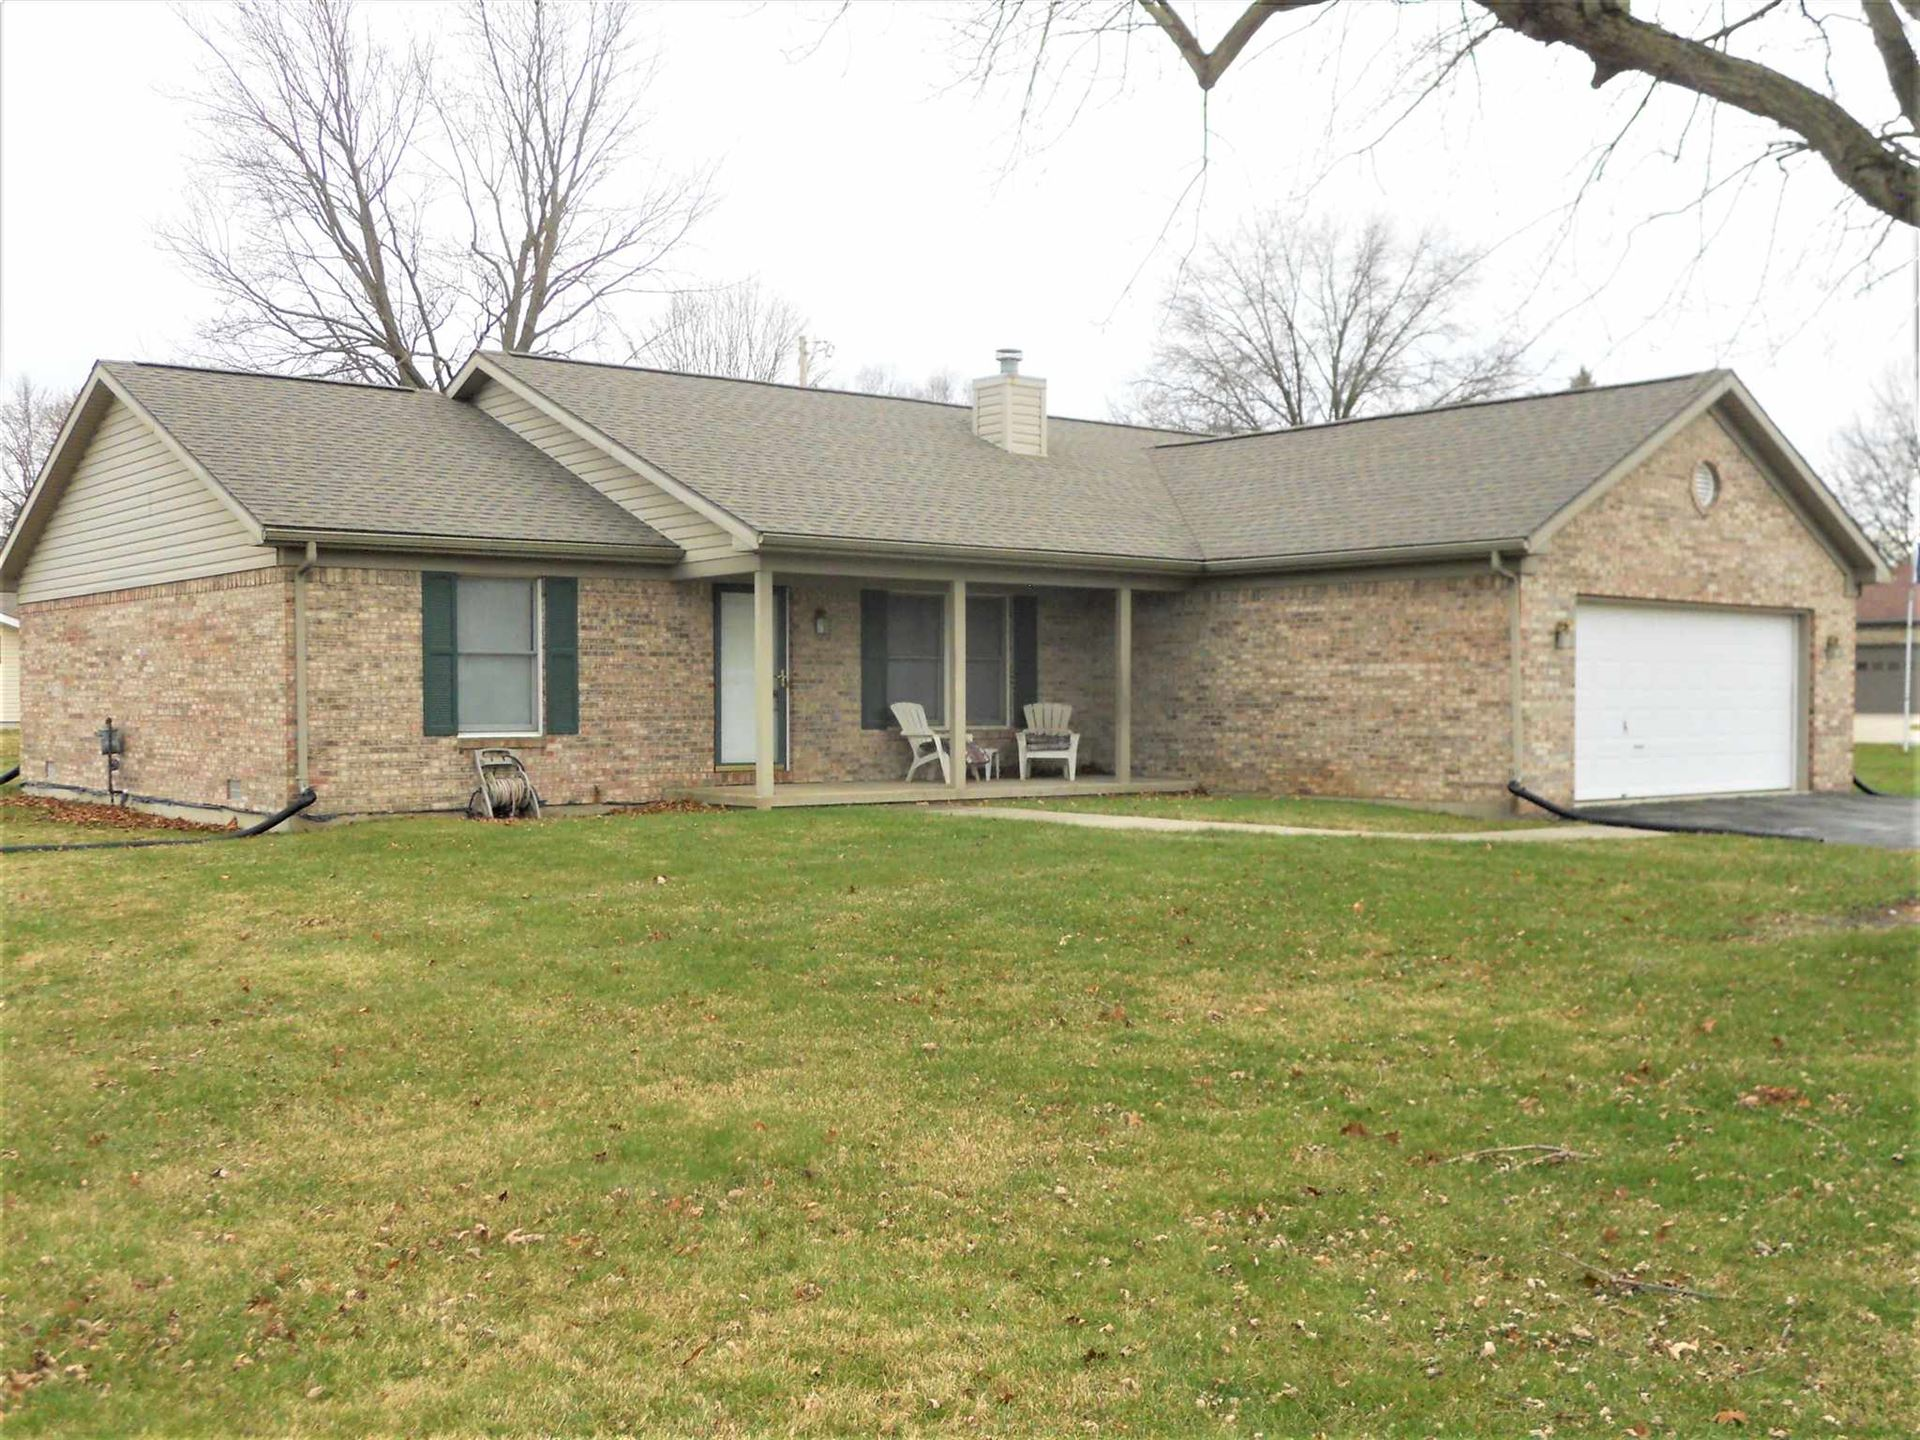 513 S 850 E, Greentown, IN 46936 - #: 202049901